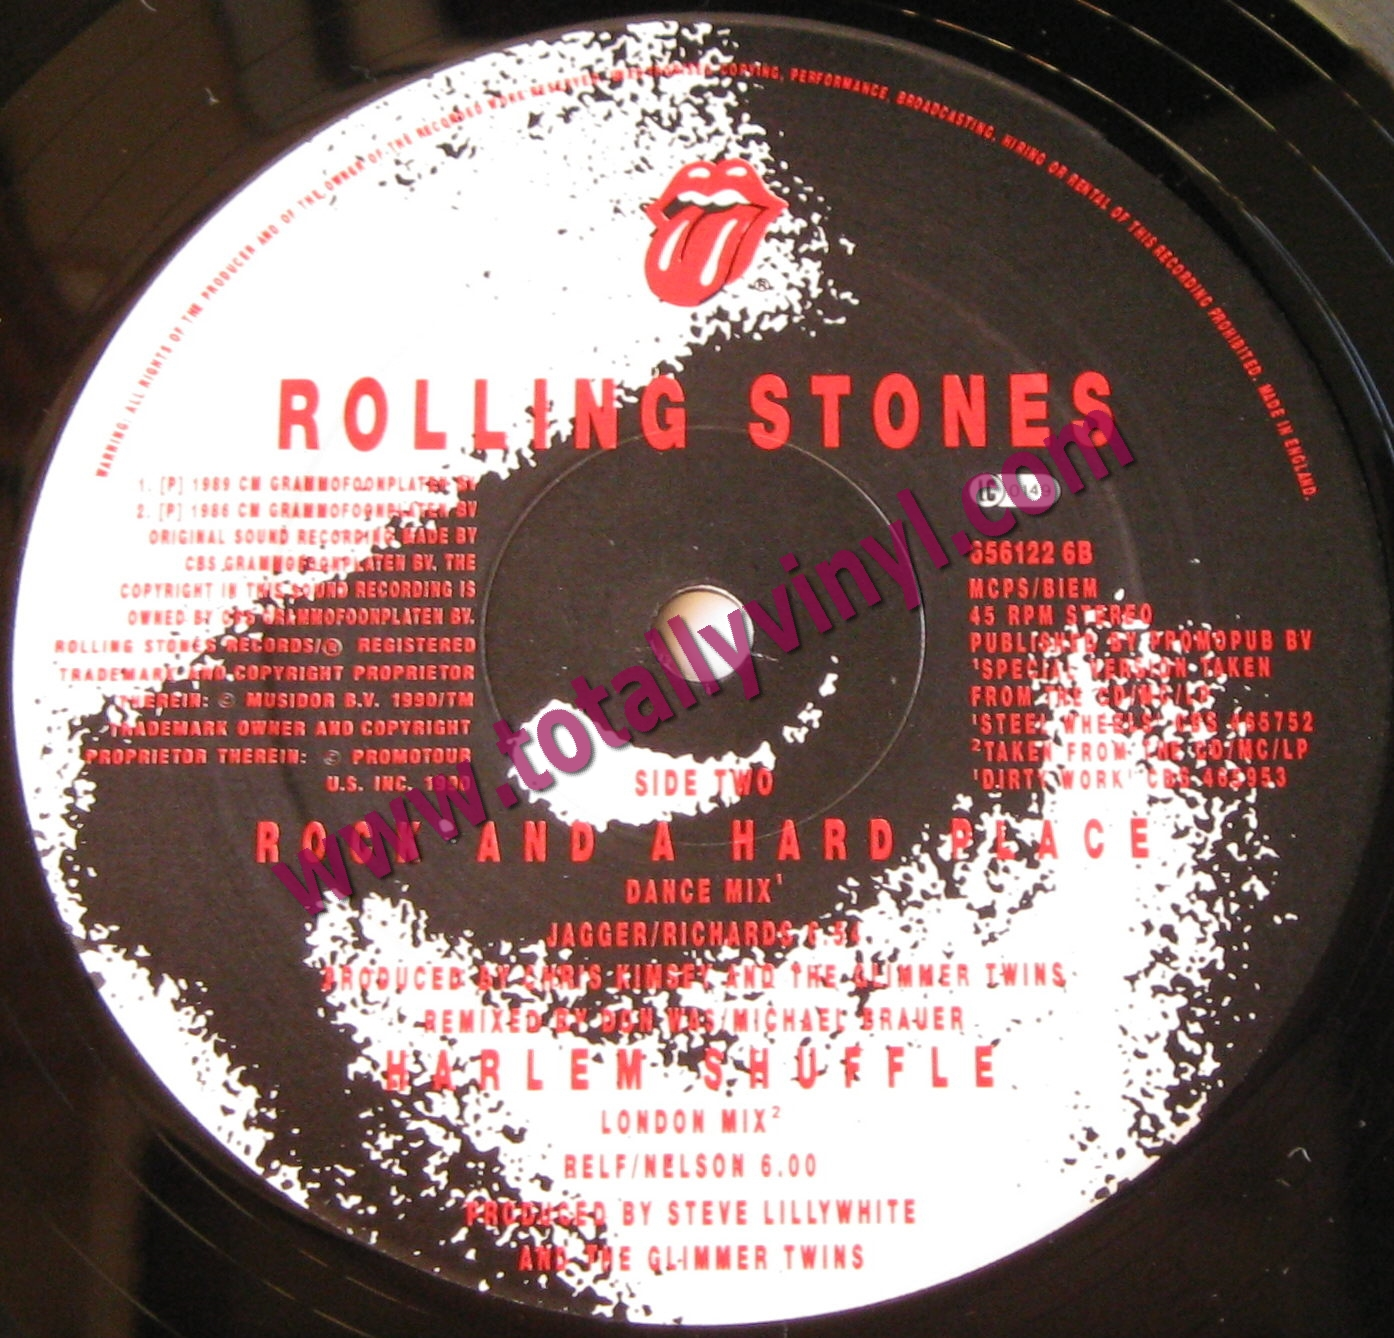 Totally Vinyl Records Rolling Stones The Steel